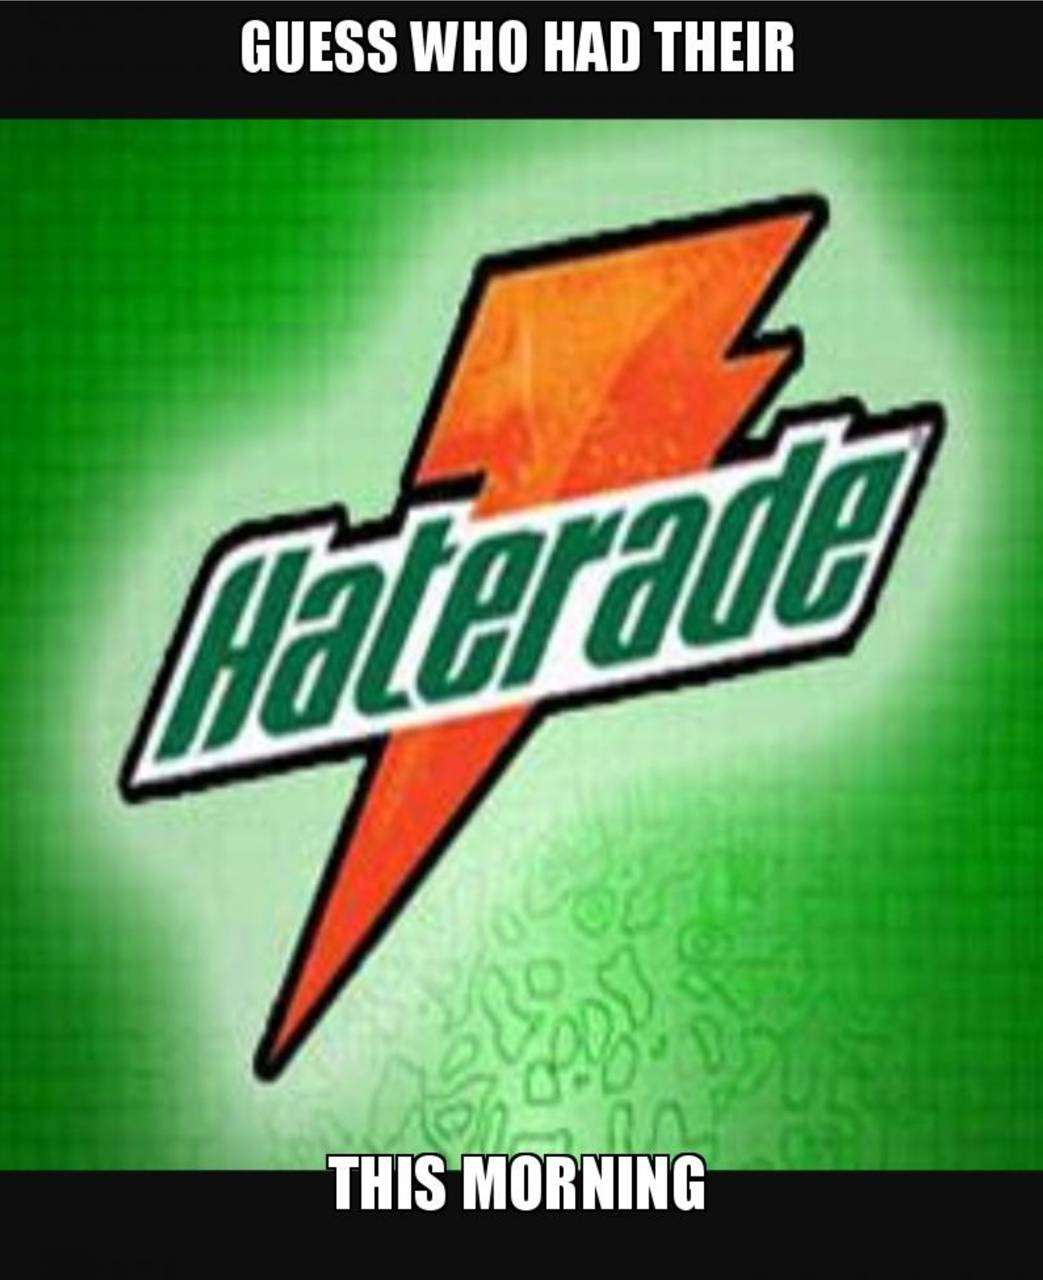 Hater-aid